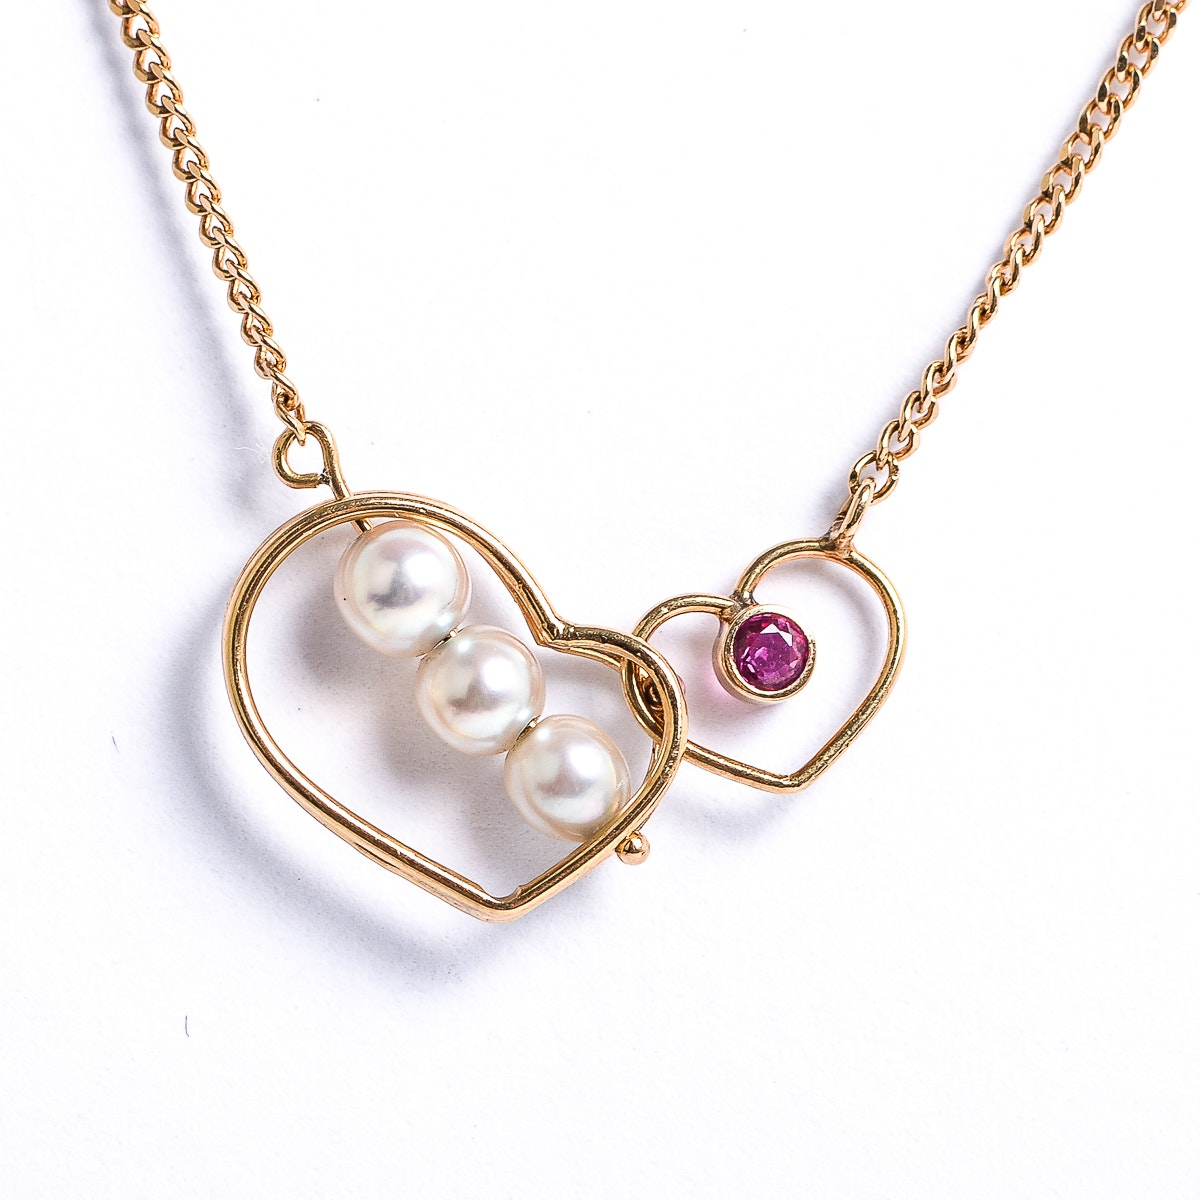 18K Yellow Gold, Pearl and Ruby Open Heart Necklace